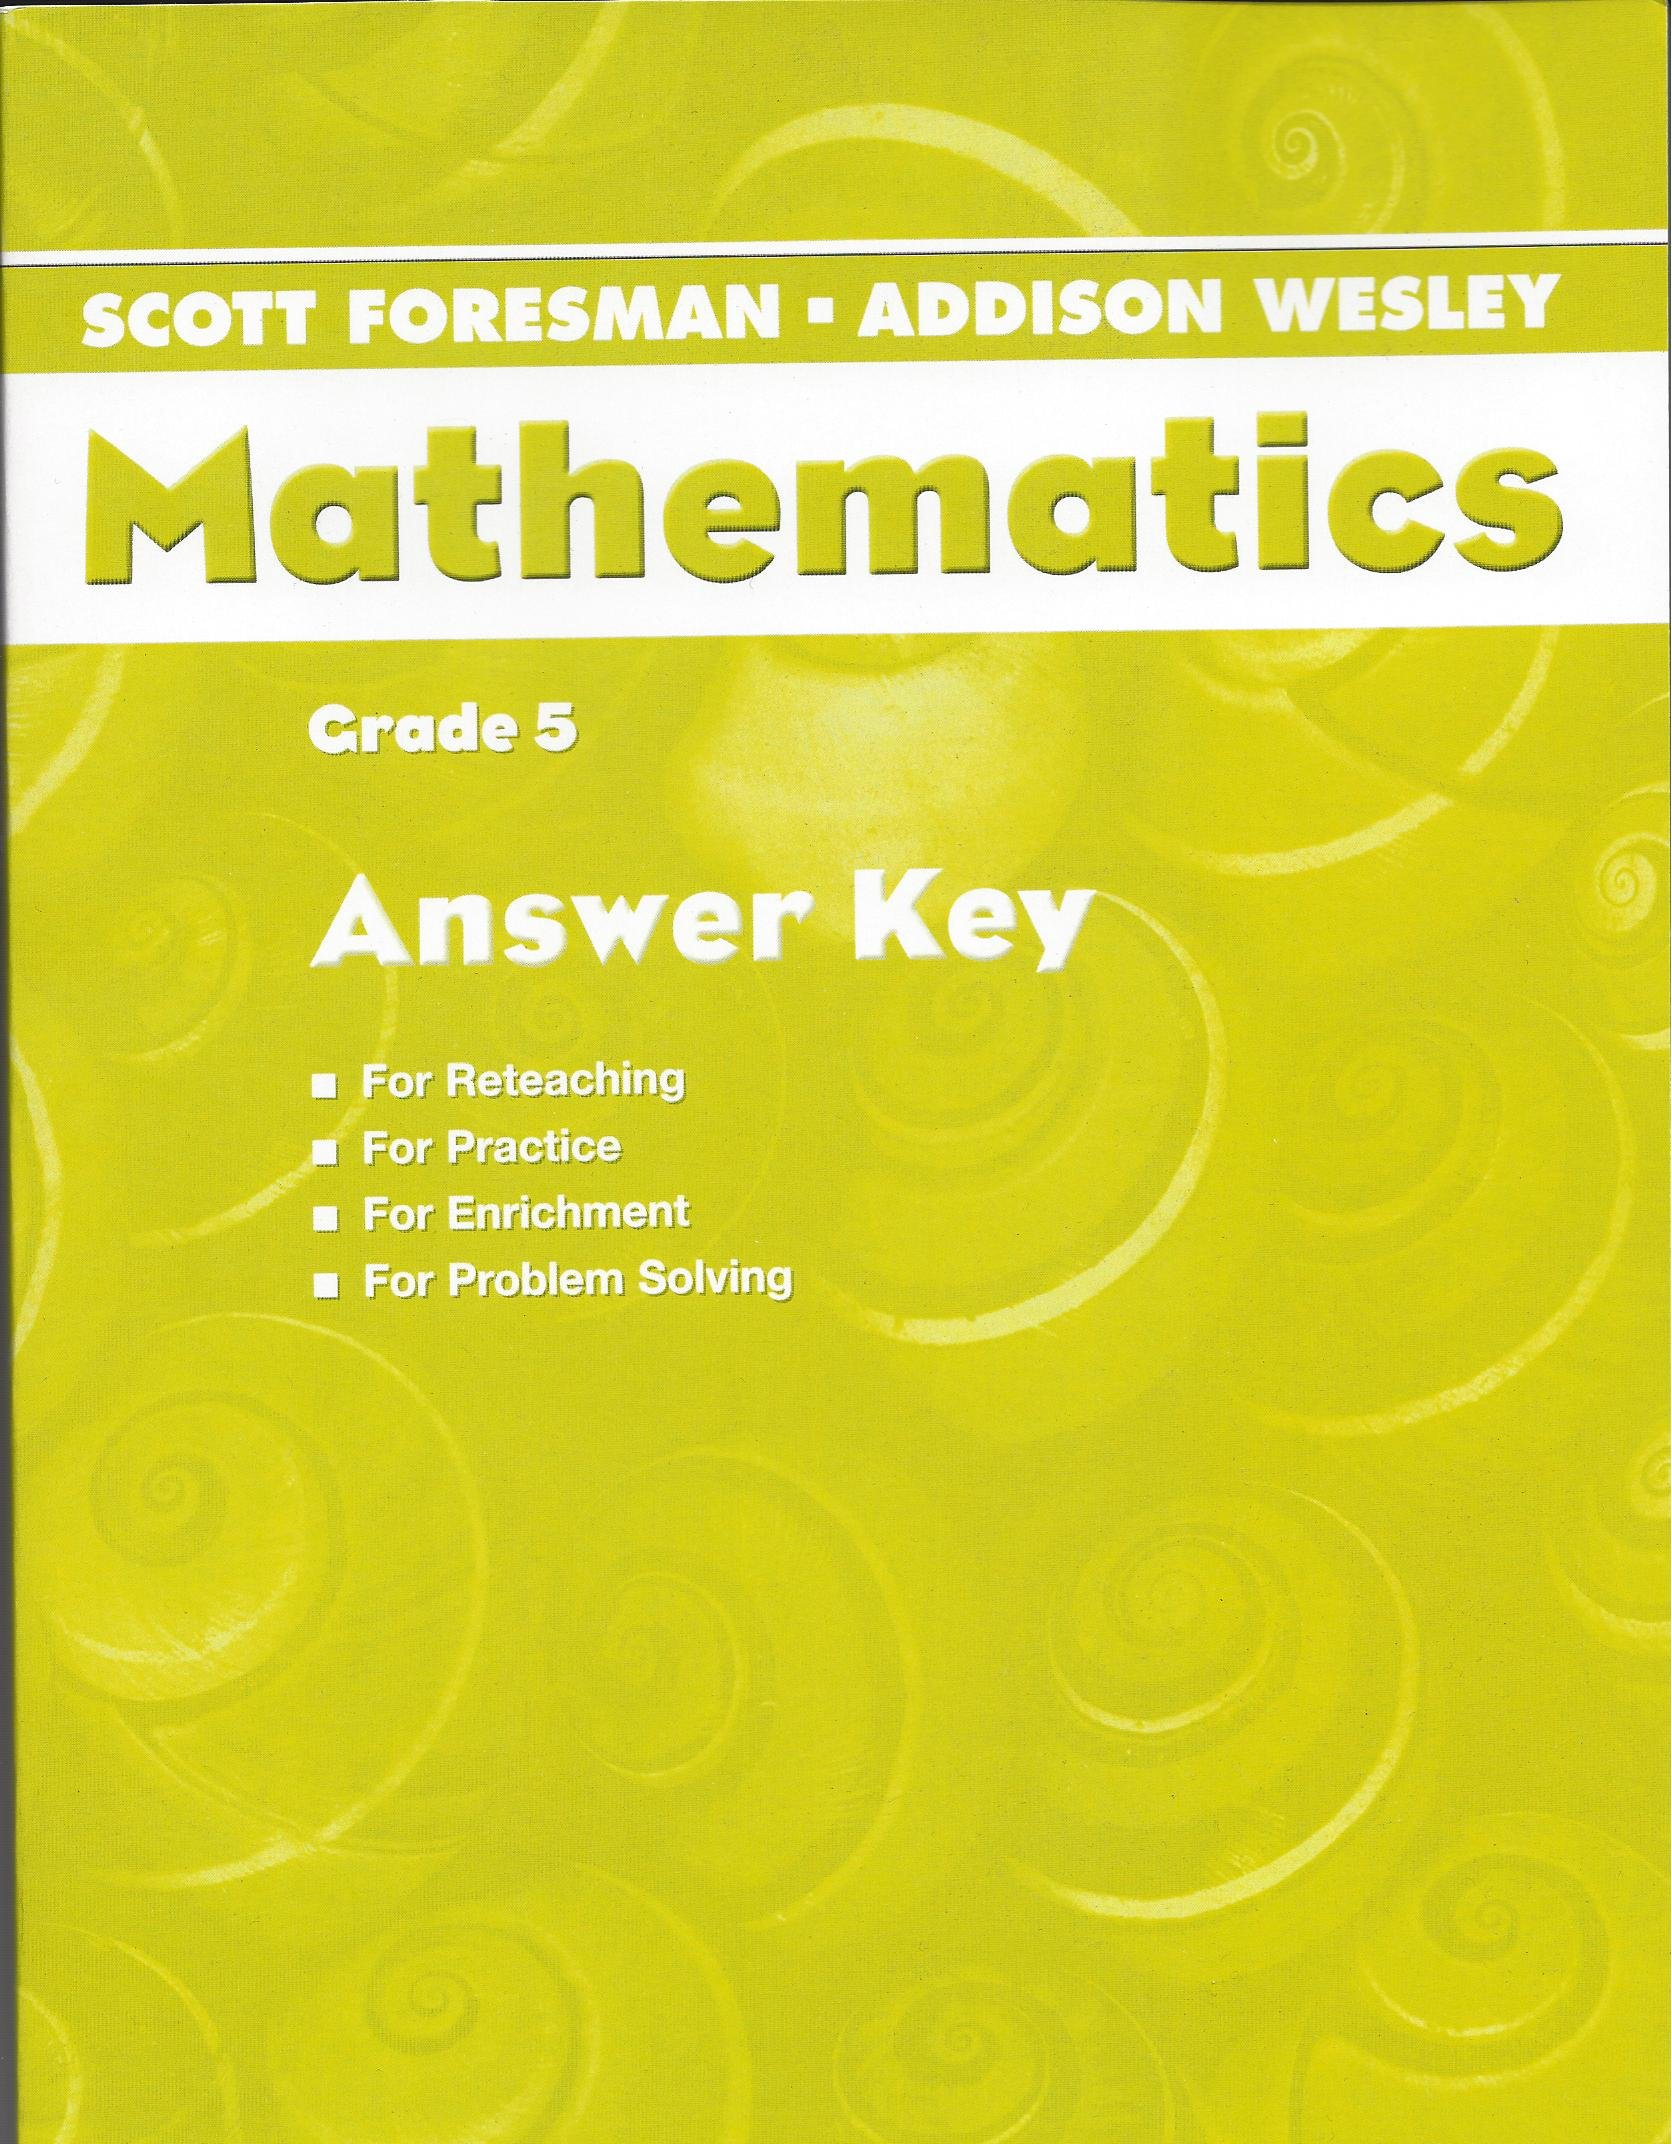 Scott Foresman Mathematics Grade 5 Answer Key 9780328049431 – Addison-wesley Publishing Company Worksheet Answers